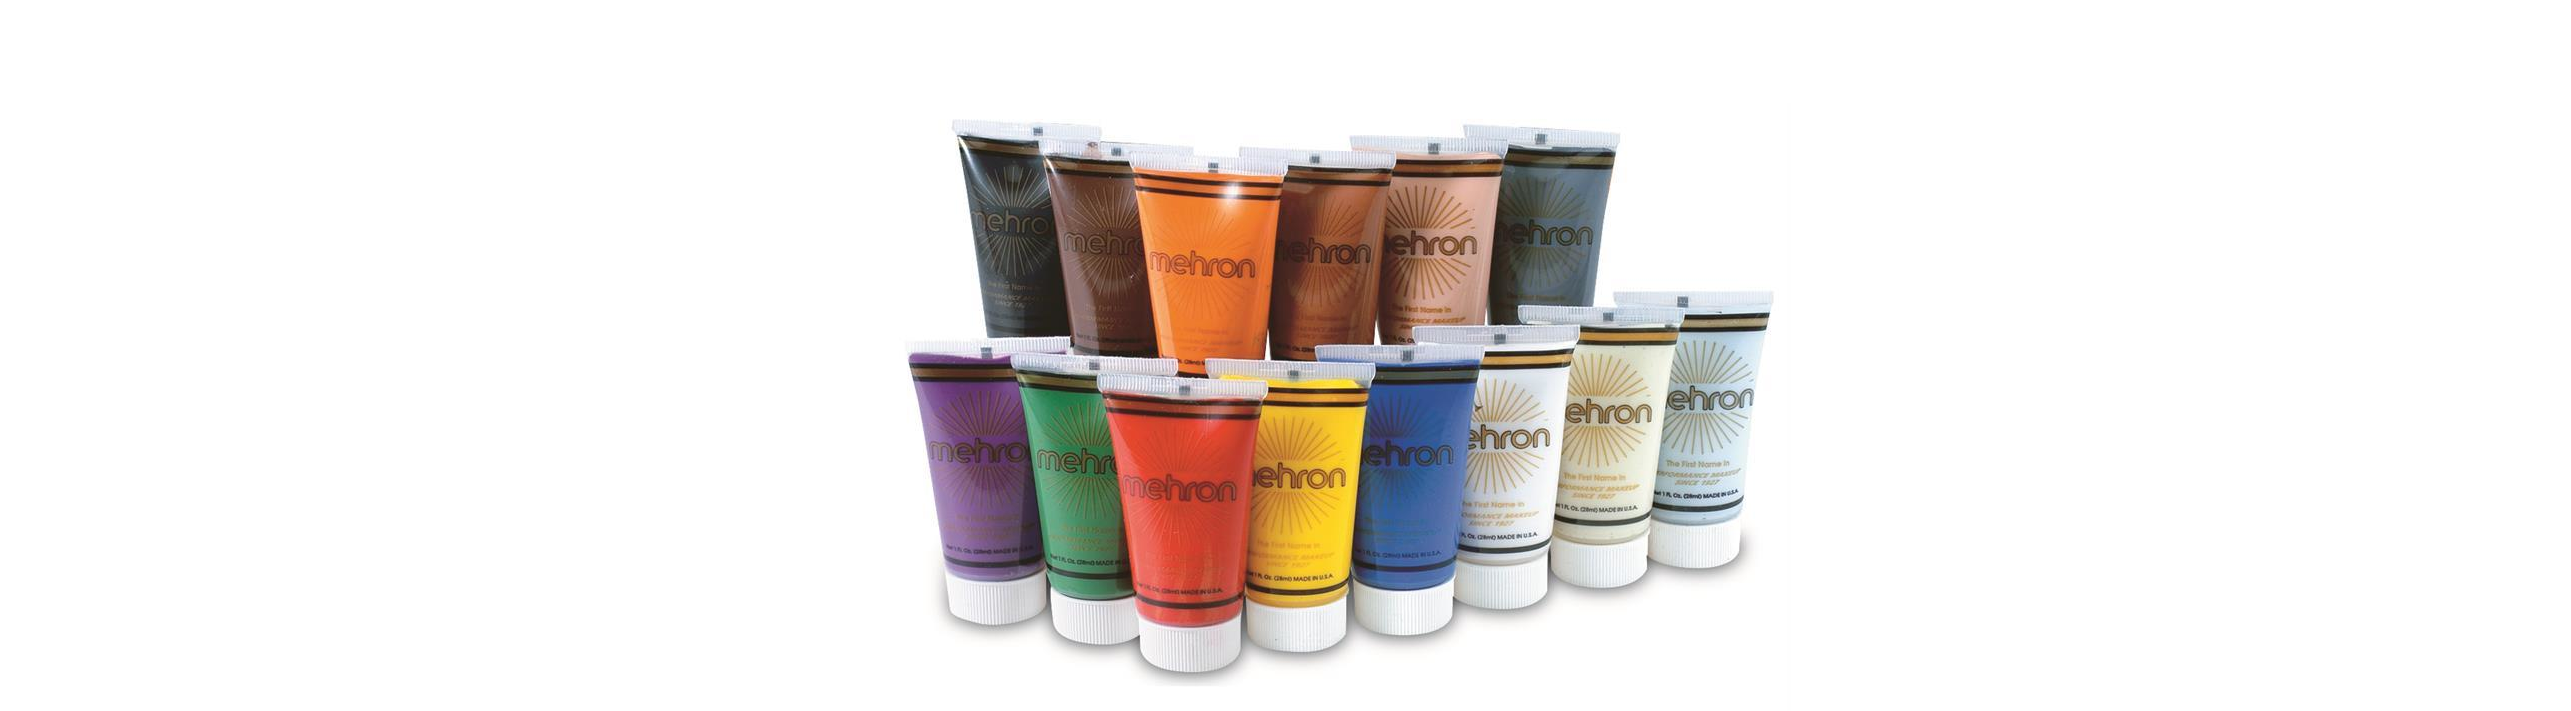 mehron fx face paint